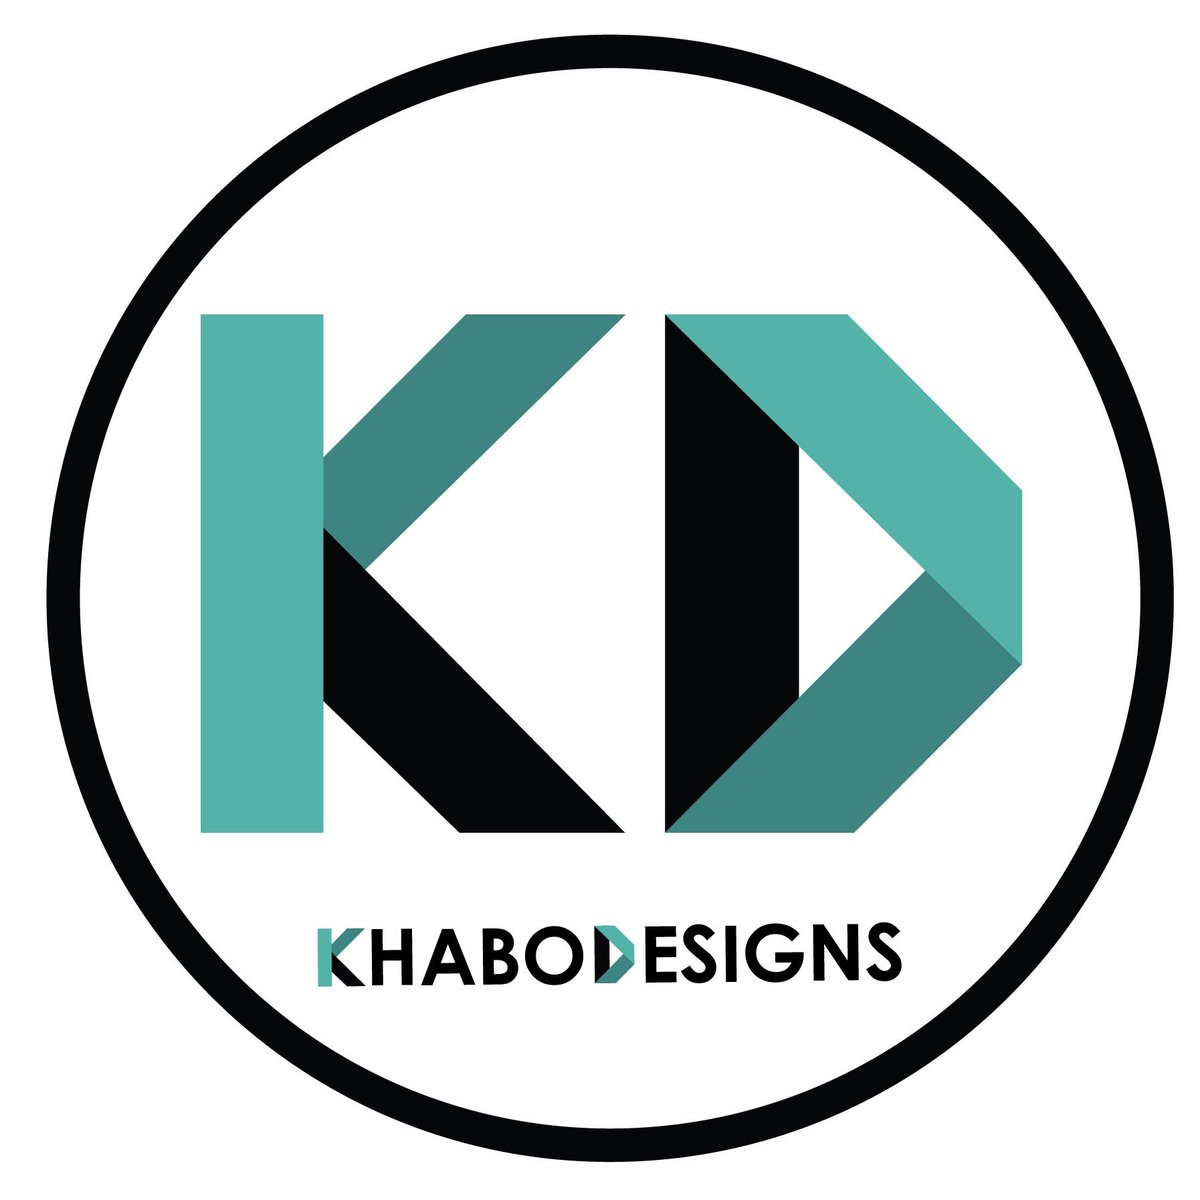 Clean designs? That's us!  Professional designs? Look no further 😆 @KhaboDesigns creates clean and professional designs Graphic Design | Multimedia | Web Design  Call/WhatsApp: 067 123 6133 Email: info@khabodesigns.co.za Web:  #design #KhaboDesigns